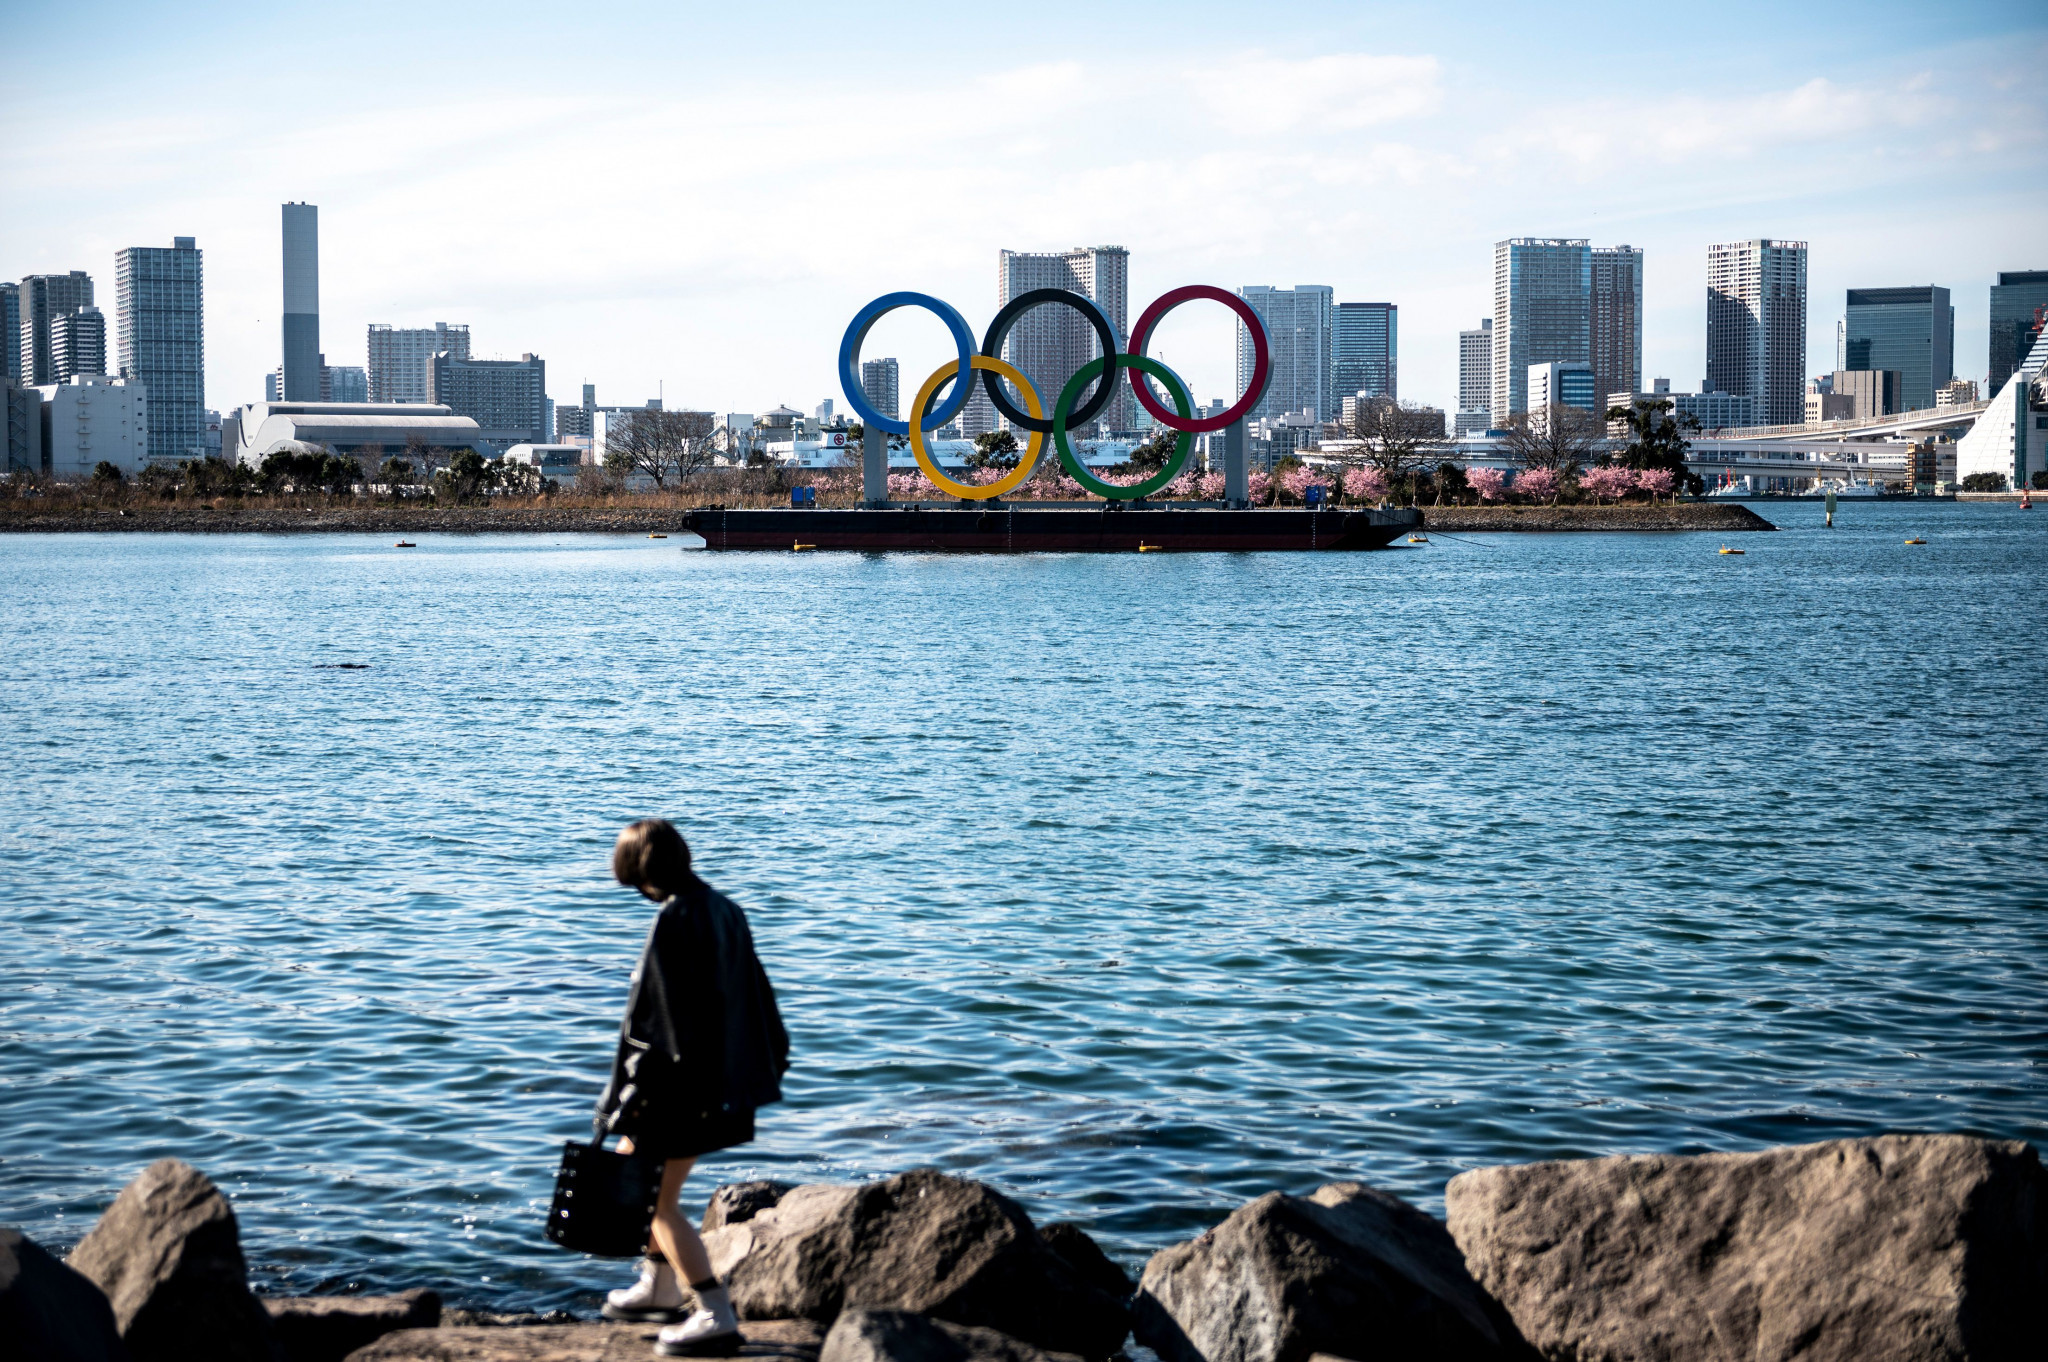 International spectators appear unlikely to be able to attend the Games ©Getty Images